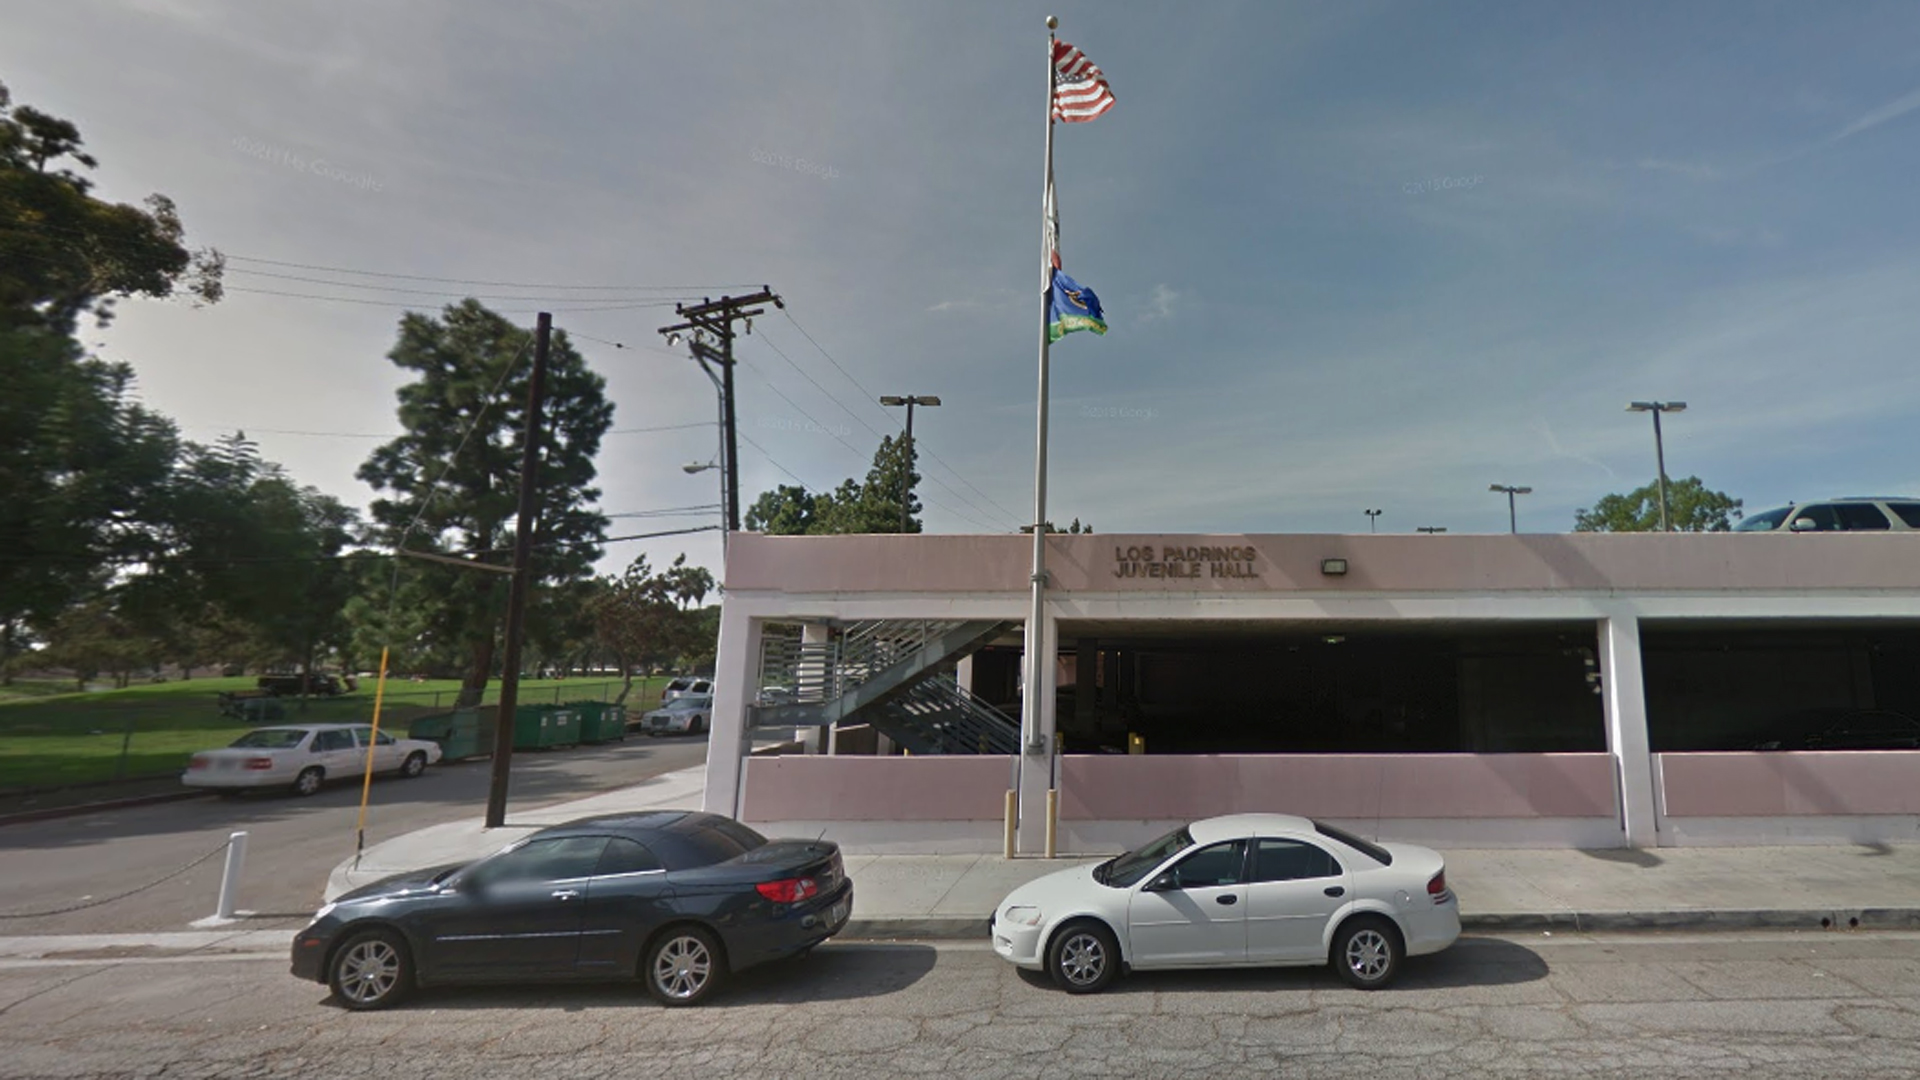 Los Padrinos Juvenile Hall in Downey is shown in a Street View image from Google Maps.